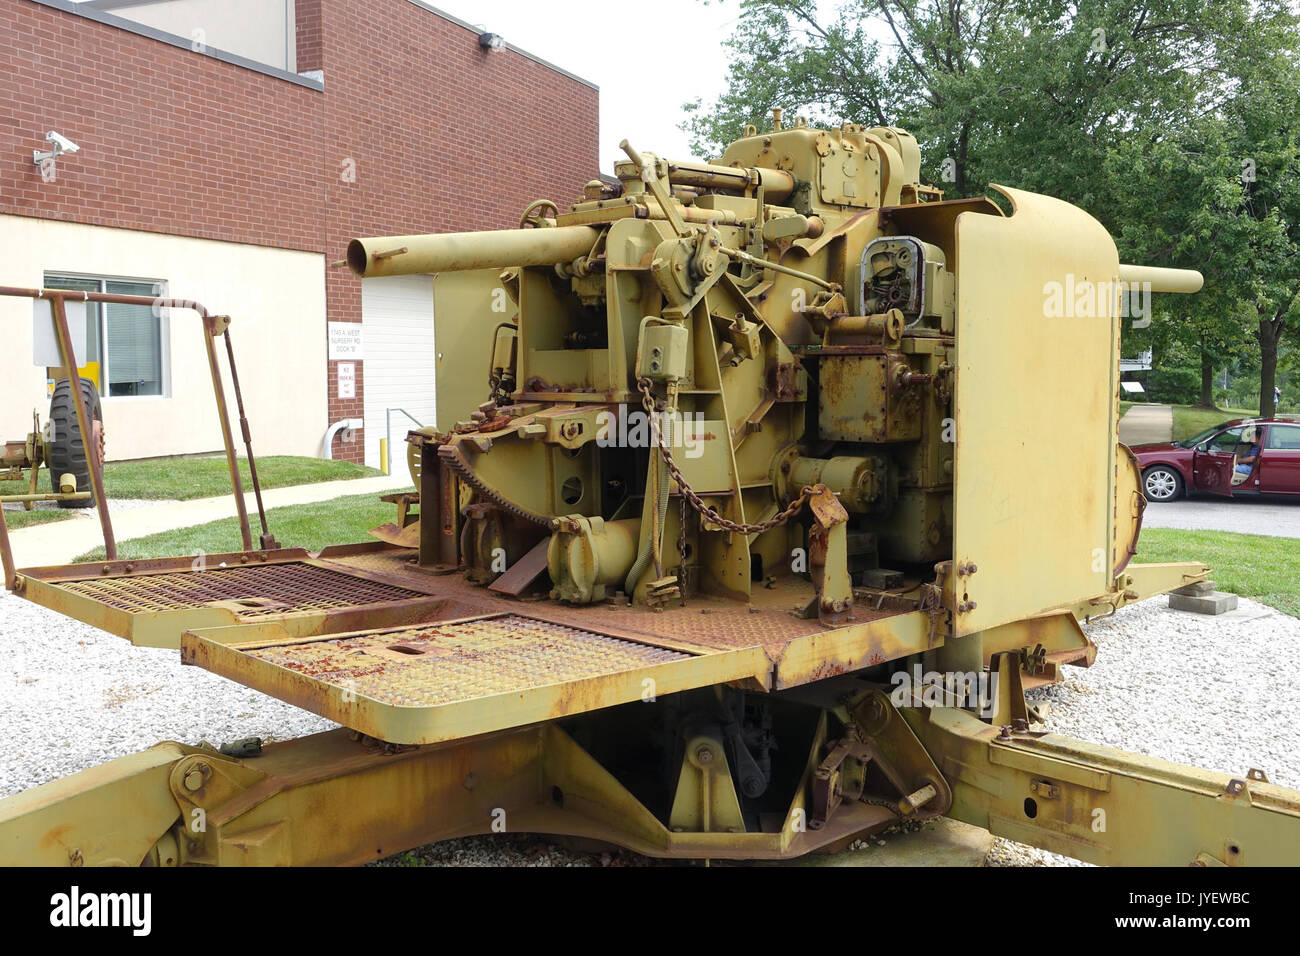 Army Figure 2 7 Trailer Cable Wiring Diagram Army 2 2 7